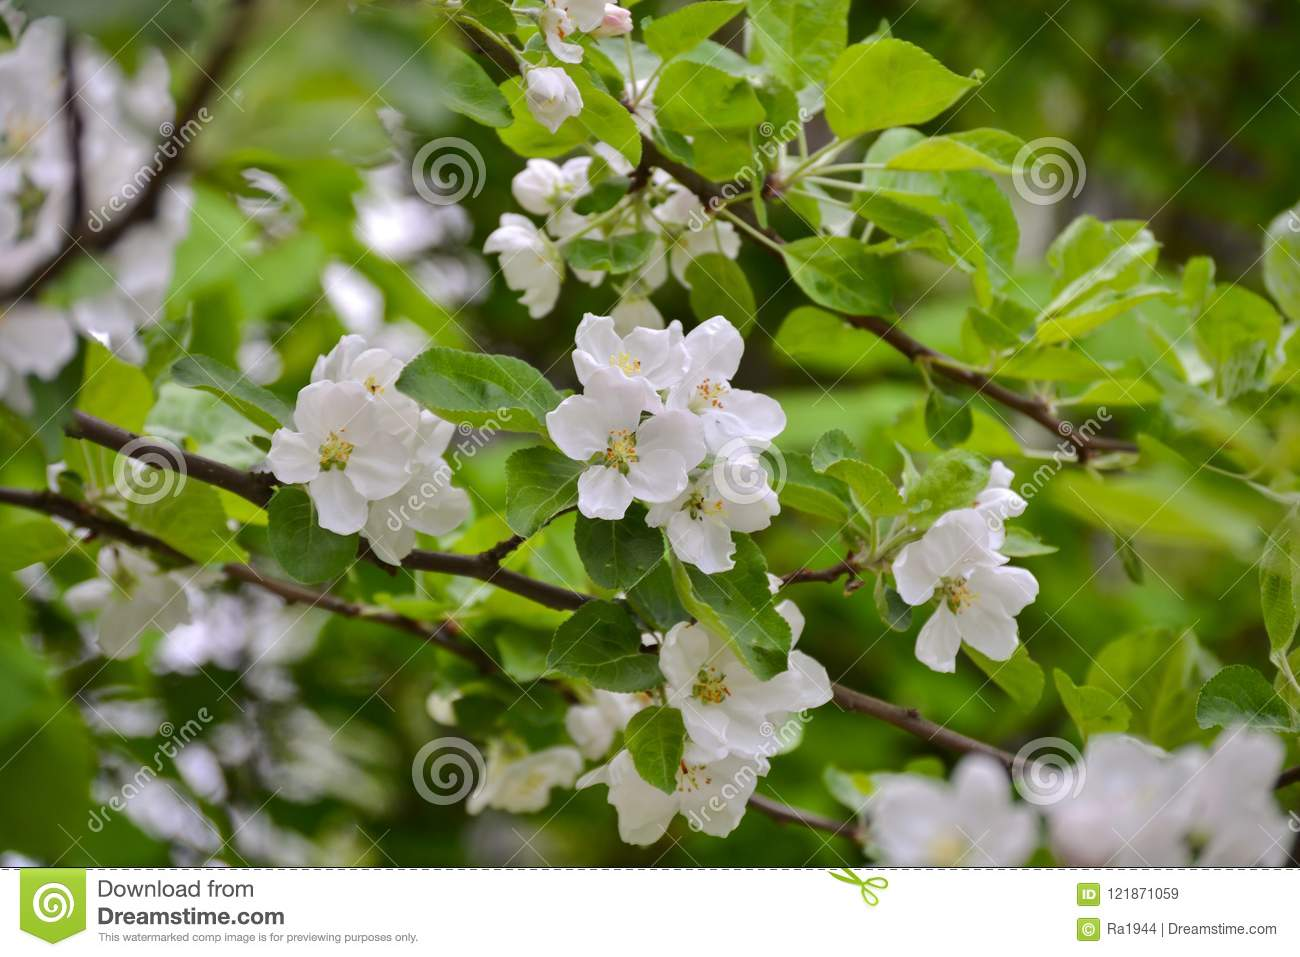 Flowering branches of trees with apple white flowers stock image download flowering branches of trees with apple white flowers stock image image of cherry mightylinksfo